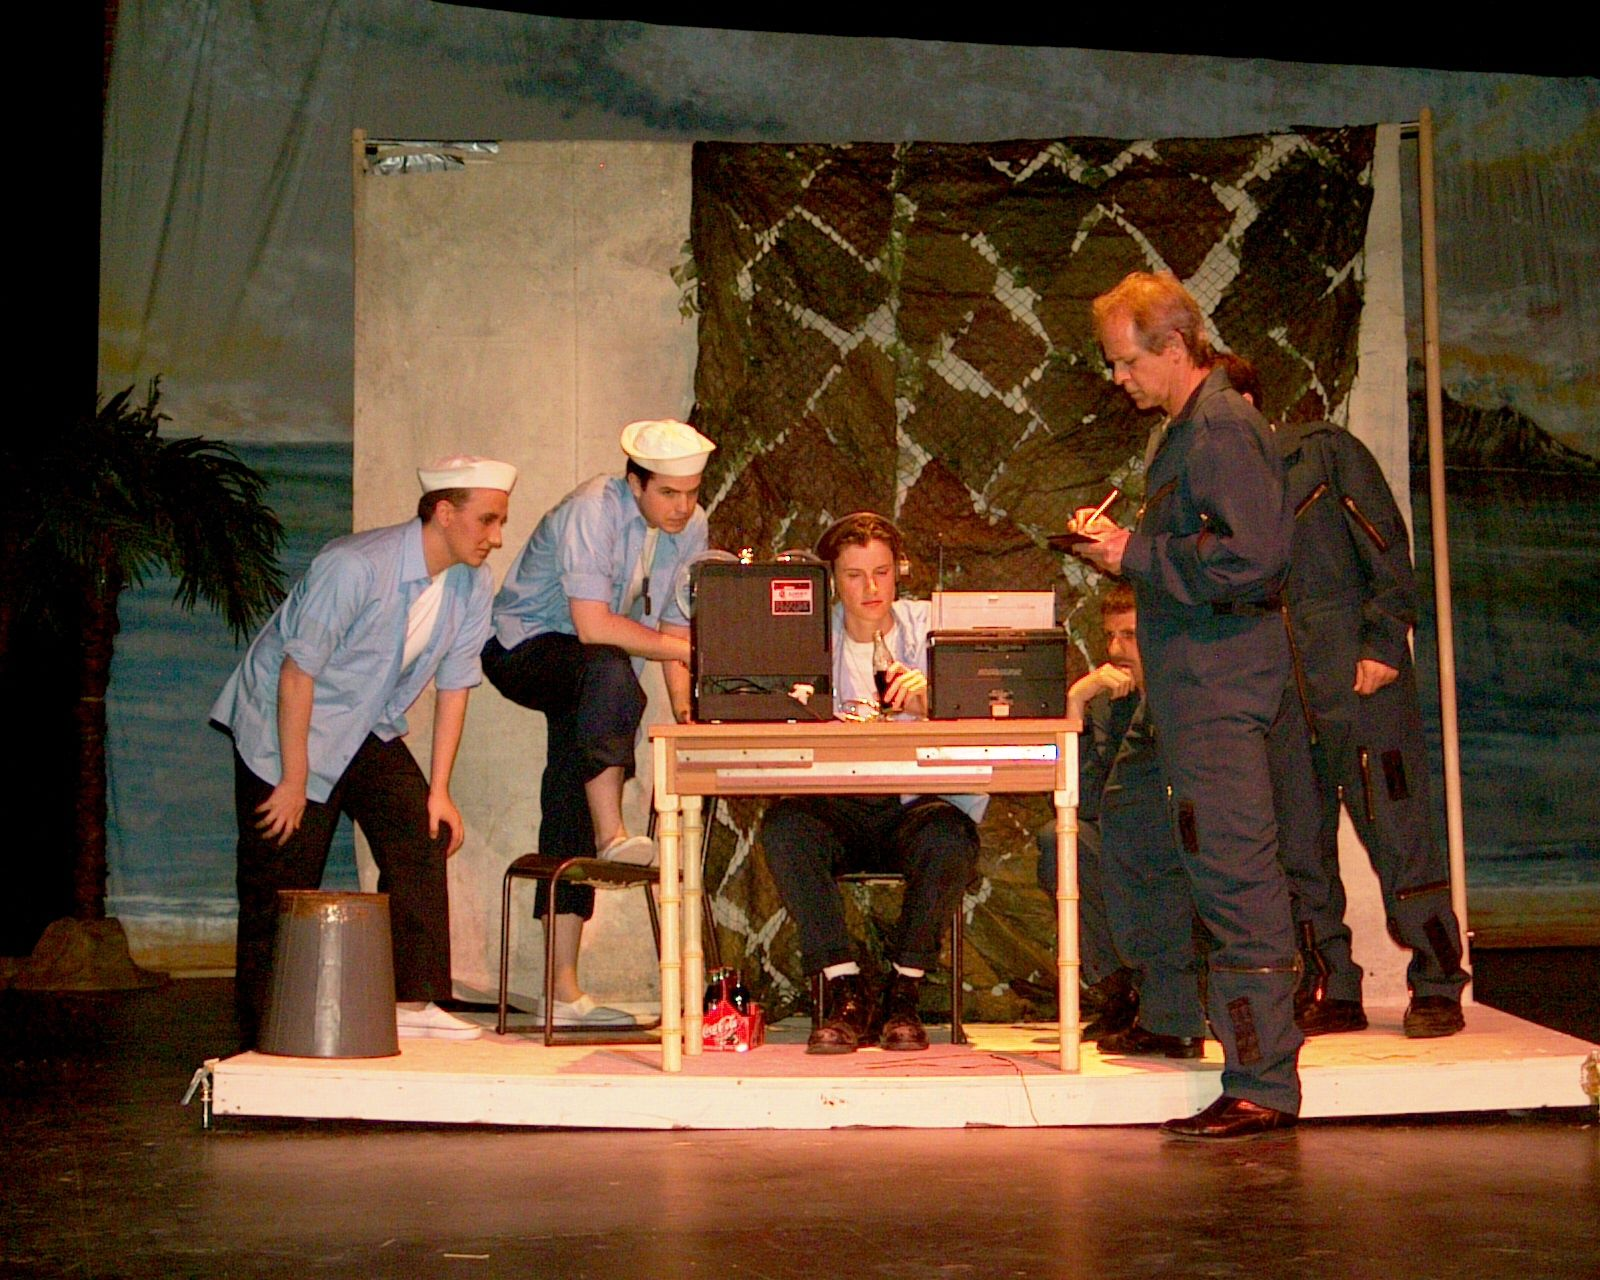 Ryan Wagner, Chris Wiseman, Dave Gagnier and Greg Spielman in South Pacific